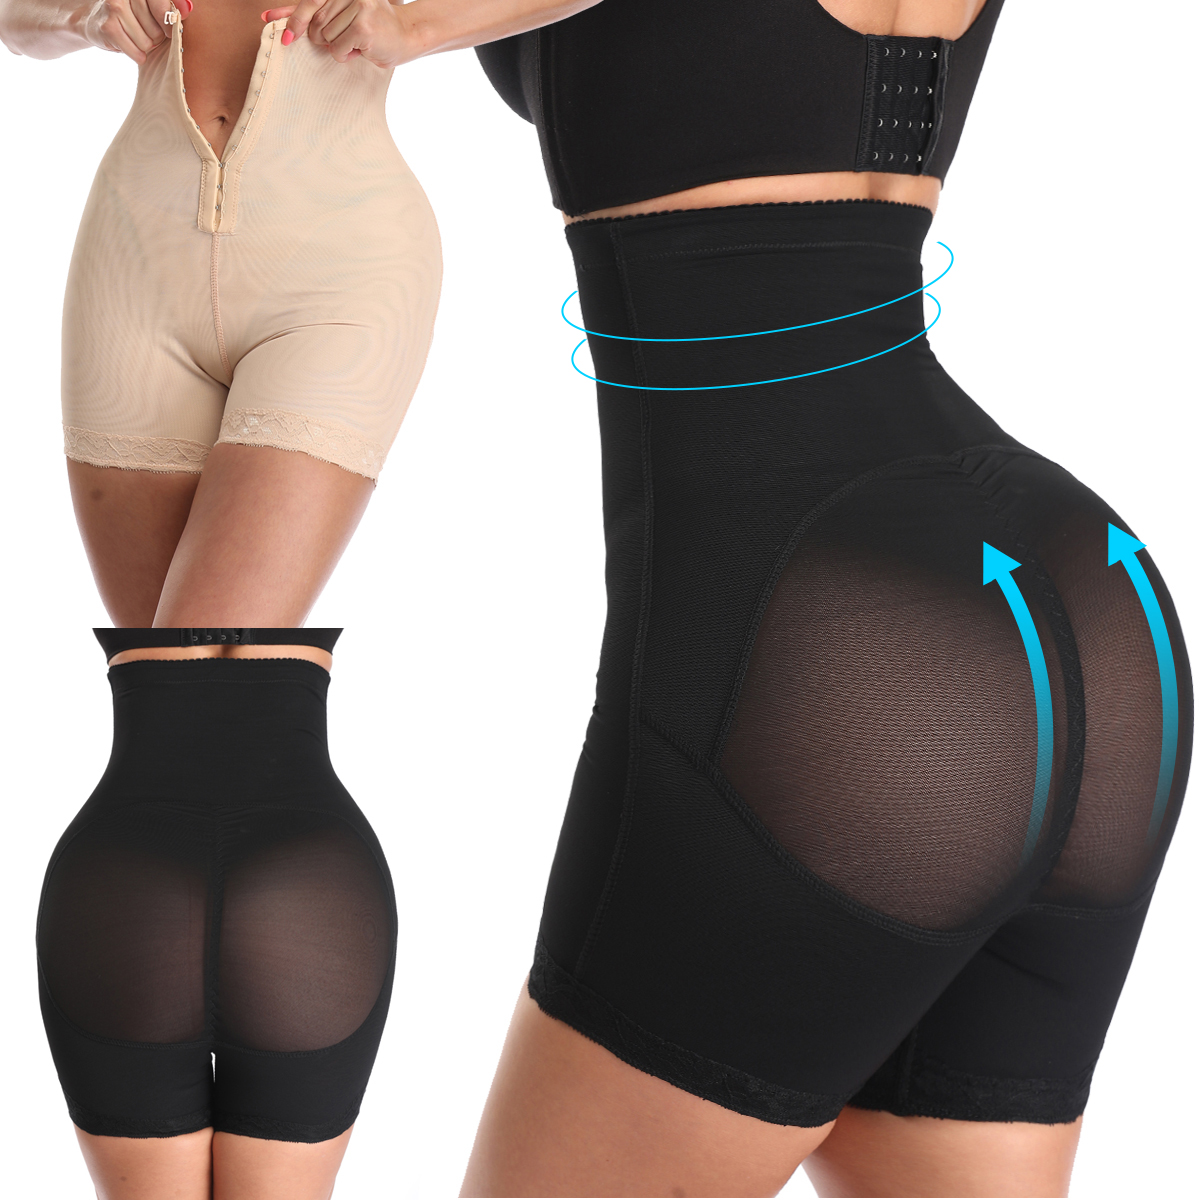 High Waist Compression Girdle Bodysuit BodyShaping Panties Women Control Panties Body Shaper Slimming Tummy Butt Lifter Hip